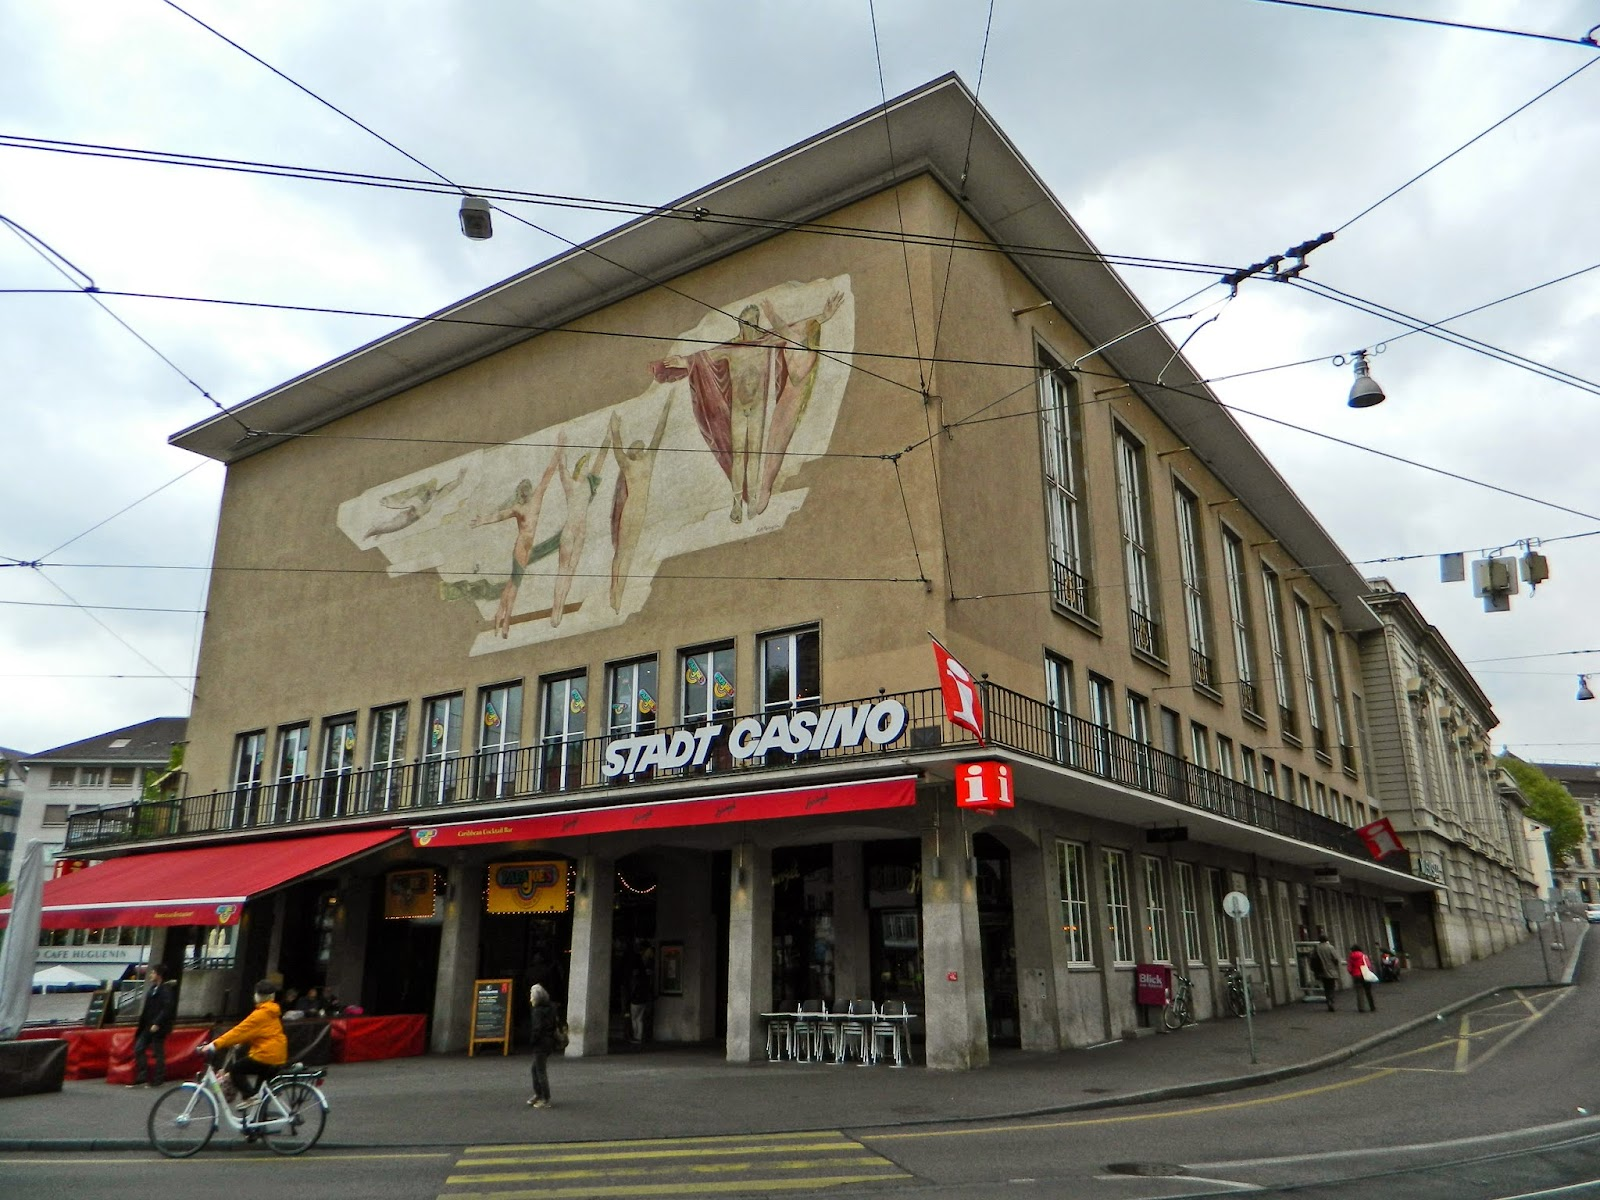 Stadtcasino basel central city casino edna stapleton